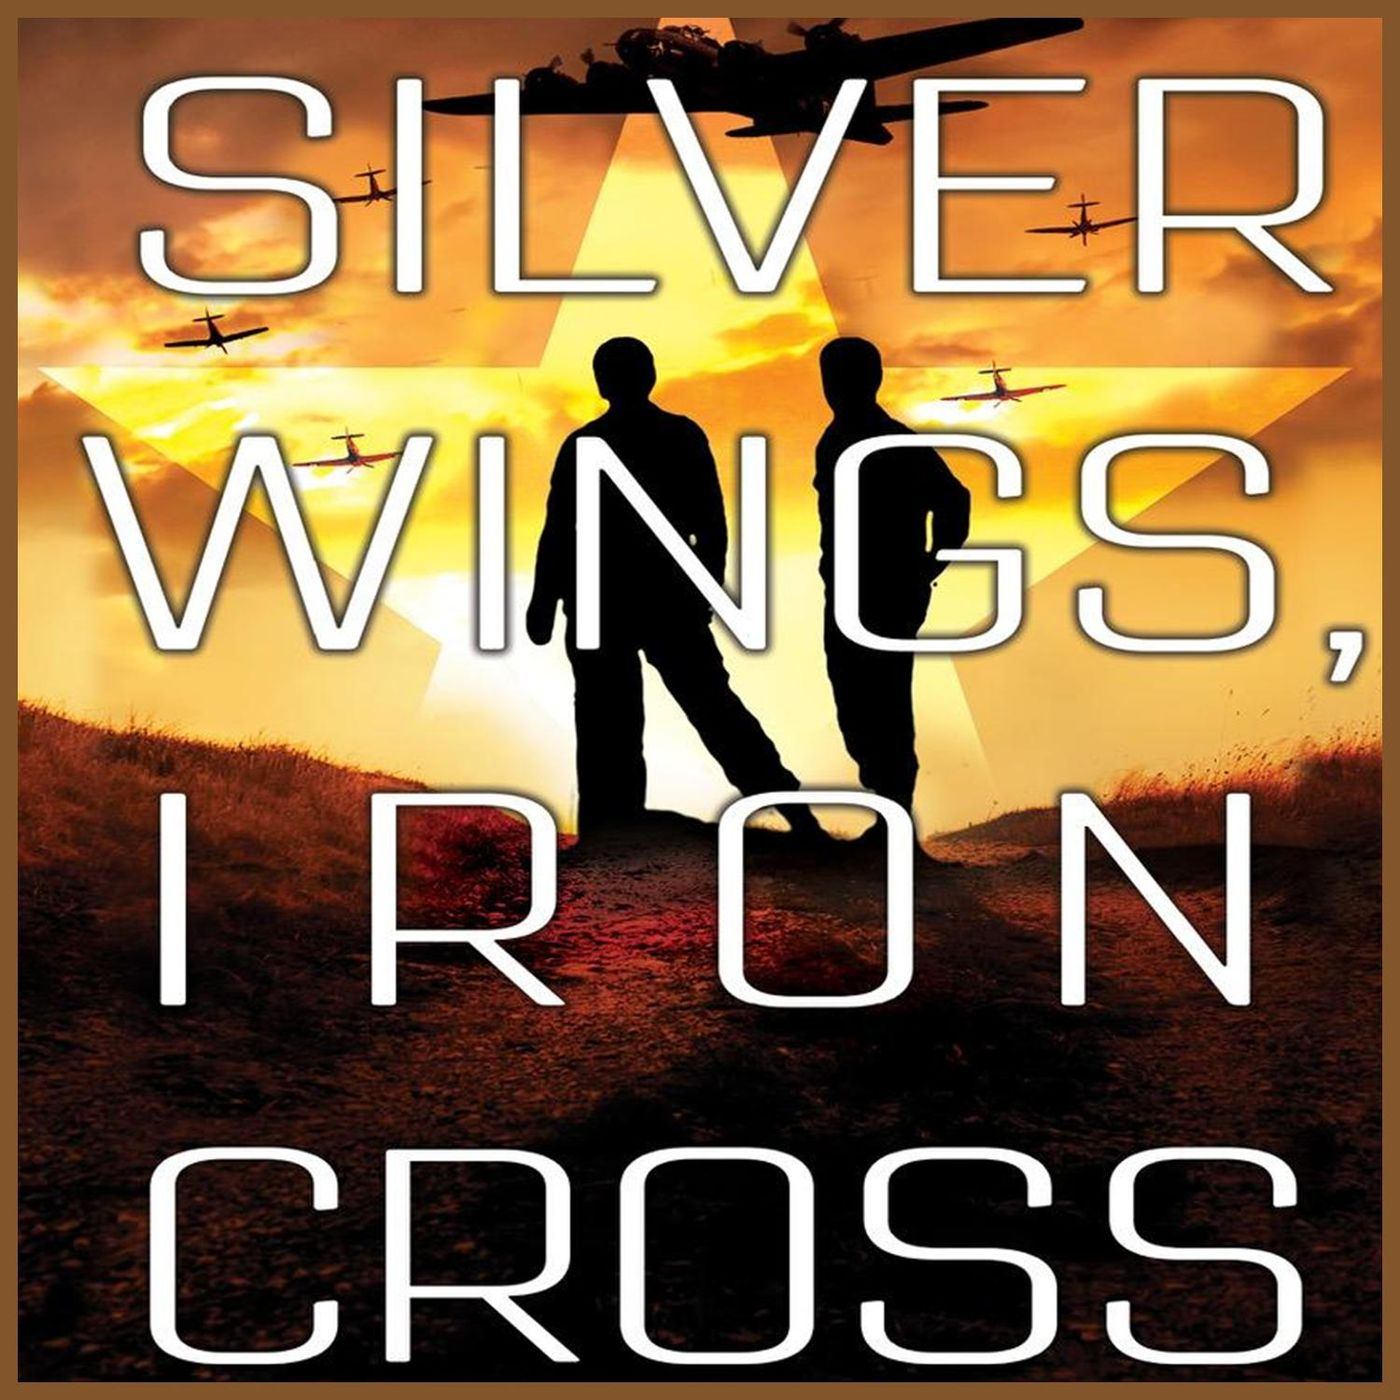 TOM YOUNG - Silver Wings Iron Cross